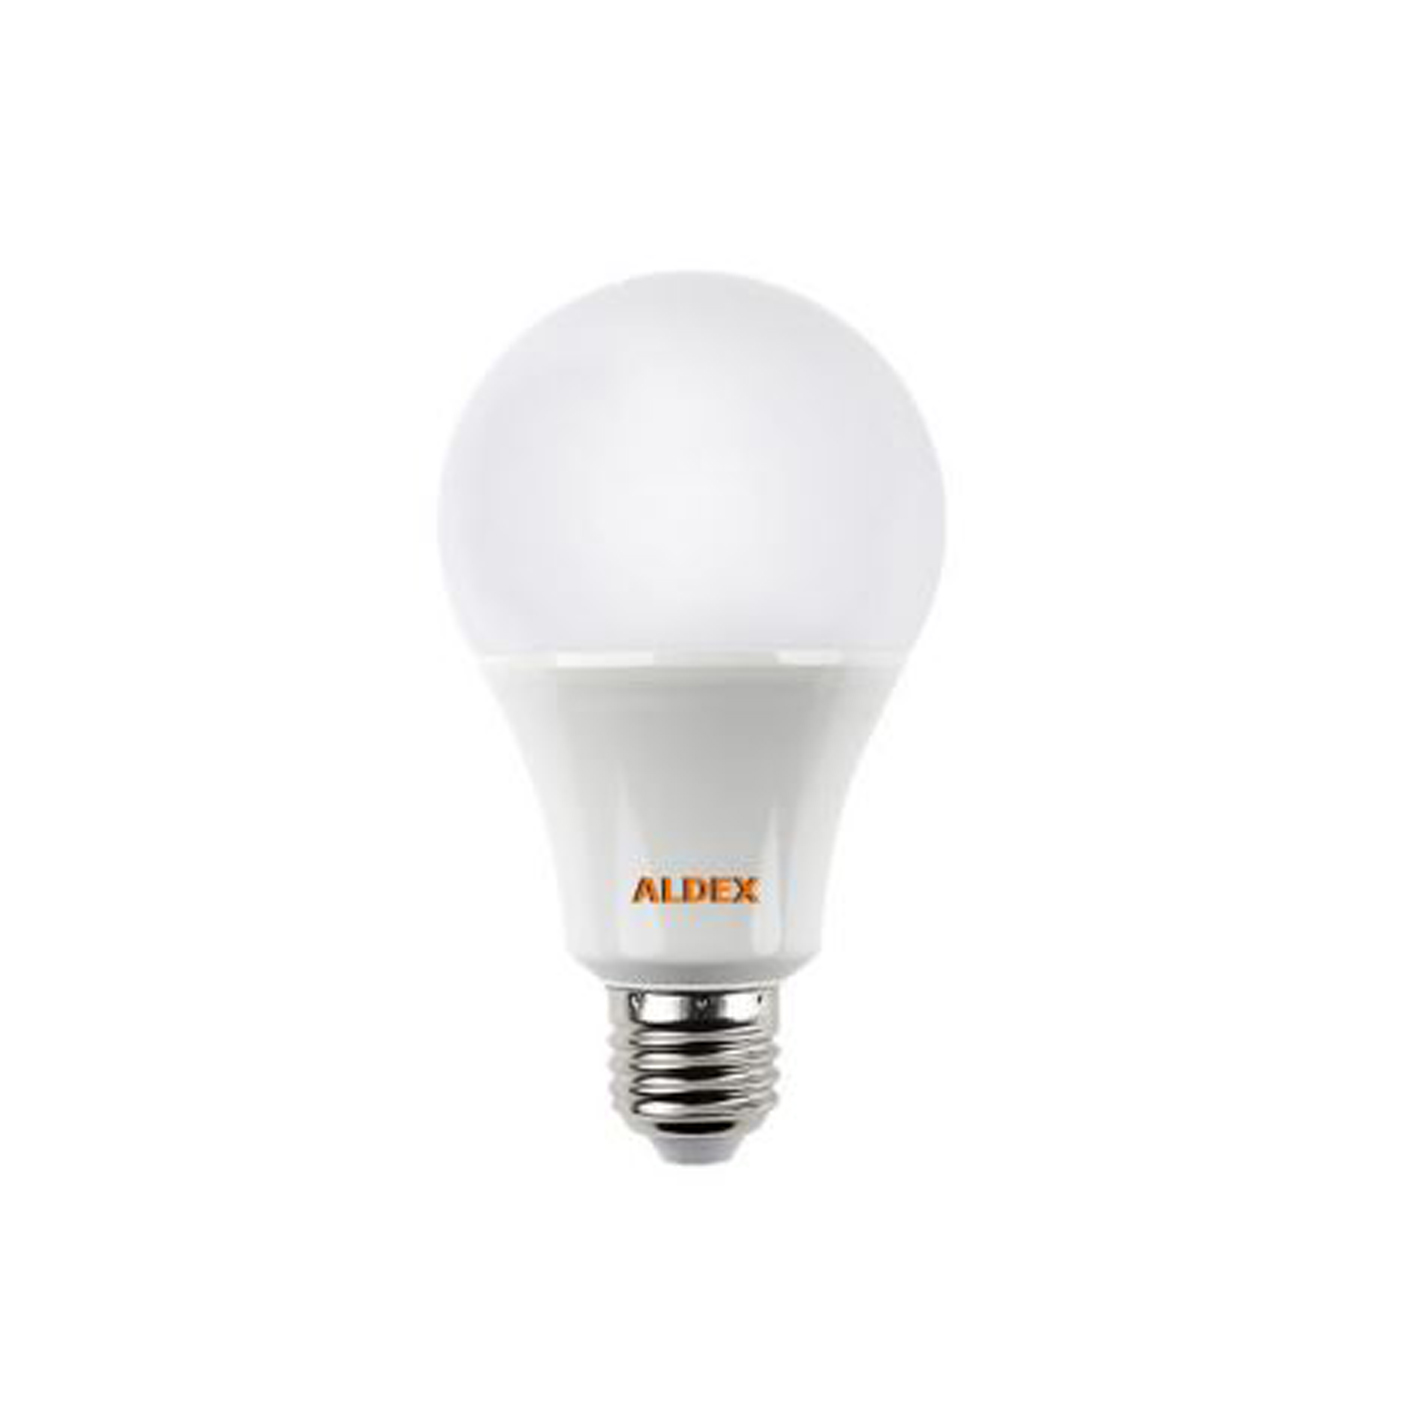 Aldex 9W 3000K E27 Led Ampul